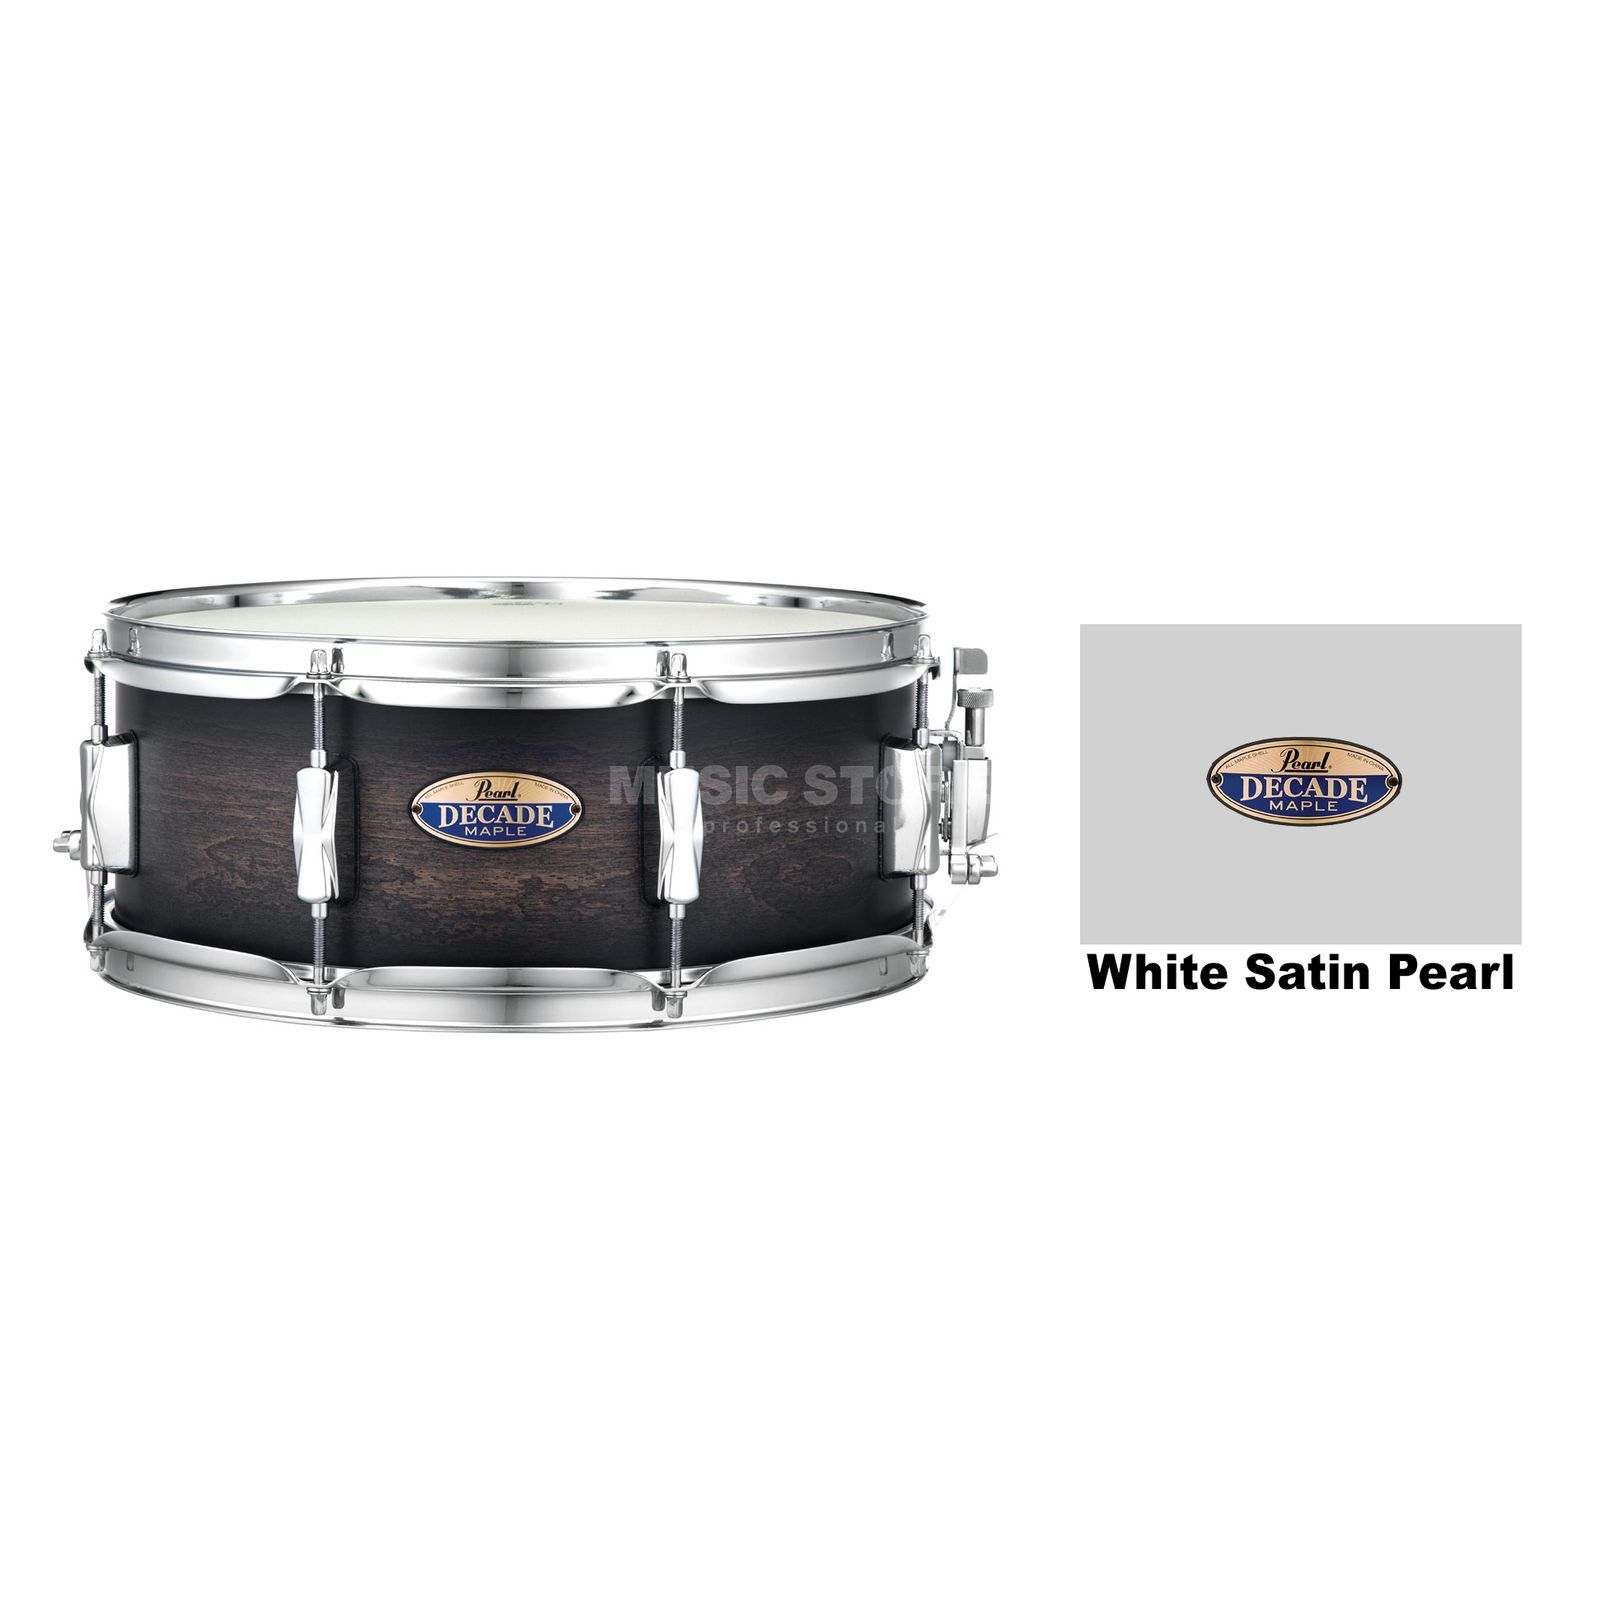 "Pearl Decade Maple Snare 14""x5,5"", White Satin Pearl Product Image"